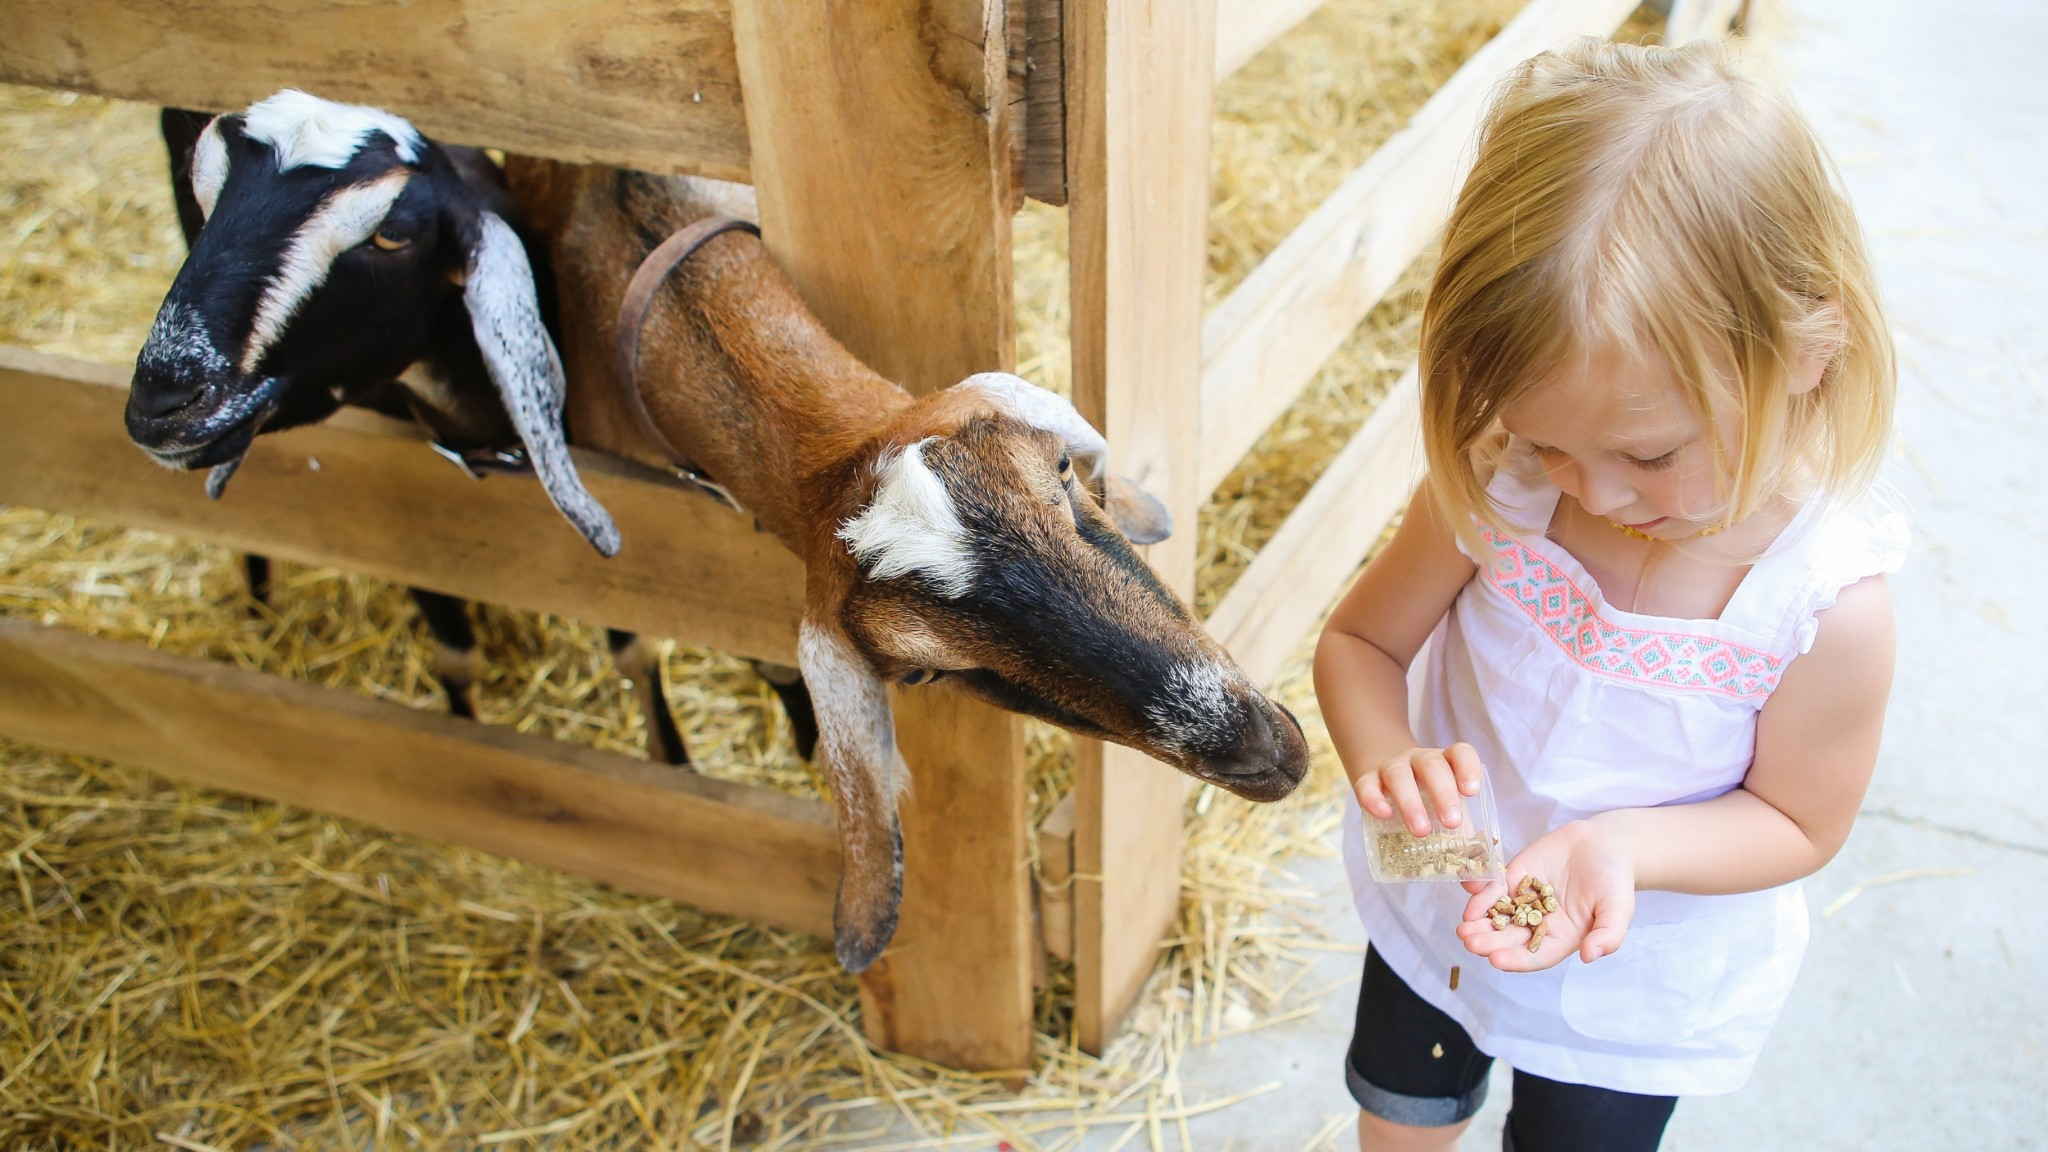 The petting zoo at Kings Island will return in 2017.